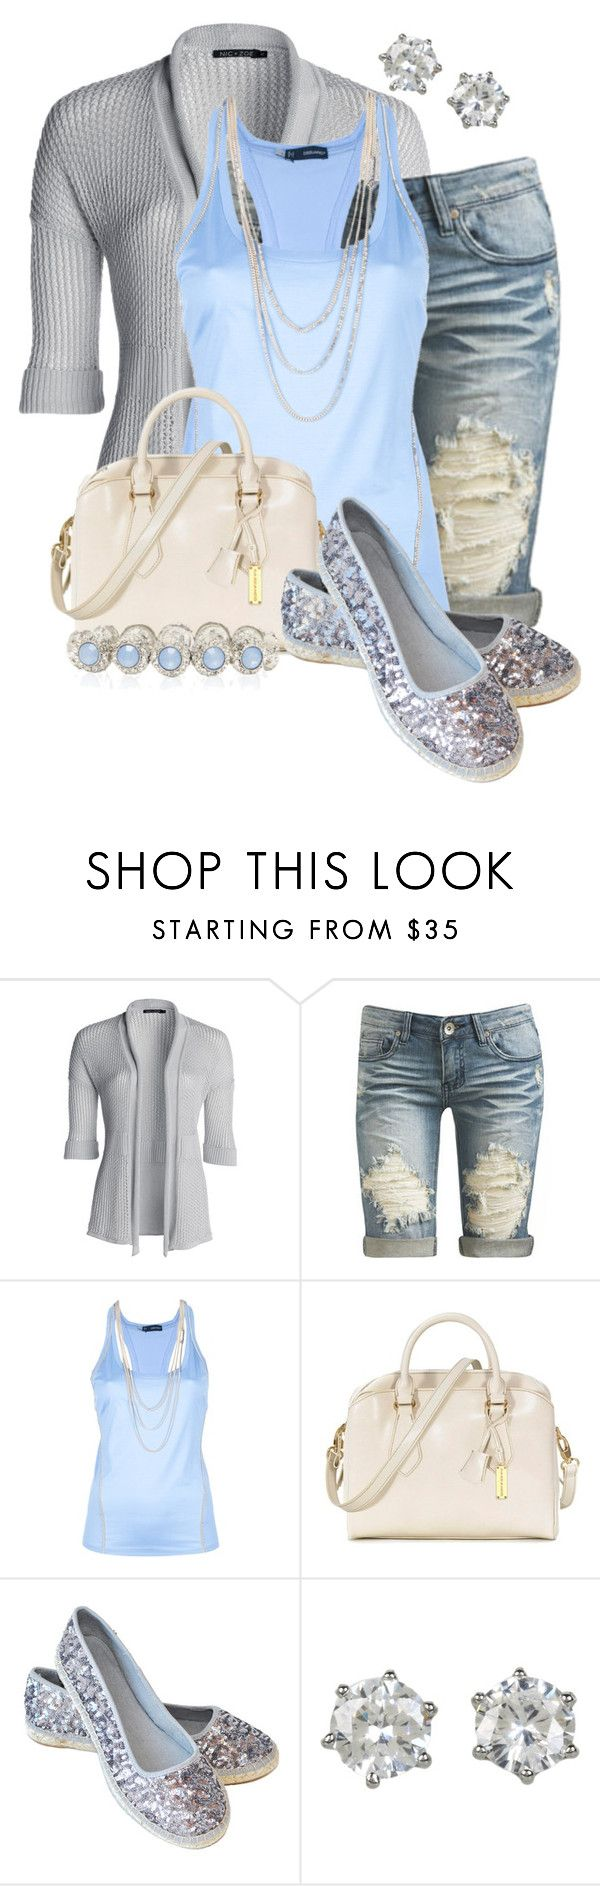 """Nomad Glitzy Silver Espadrille"" by colierollers ❤ liked on Polyvore featuring NIC+ZOE, Arden B., Dsquared2, RABEANCO, Nomad, Juicy Couture and Forever New"